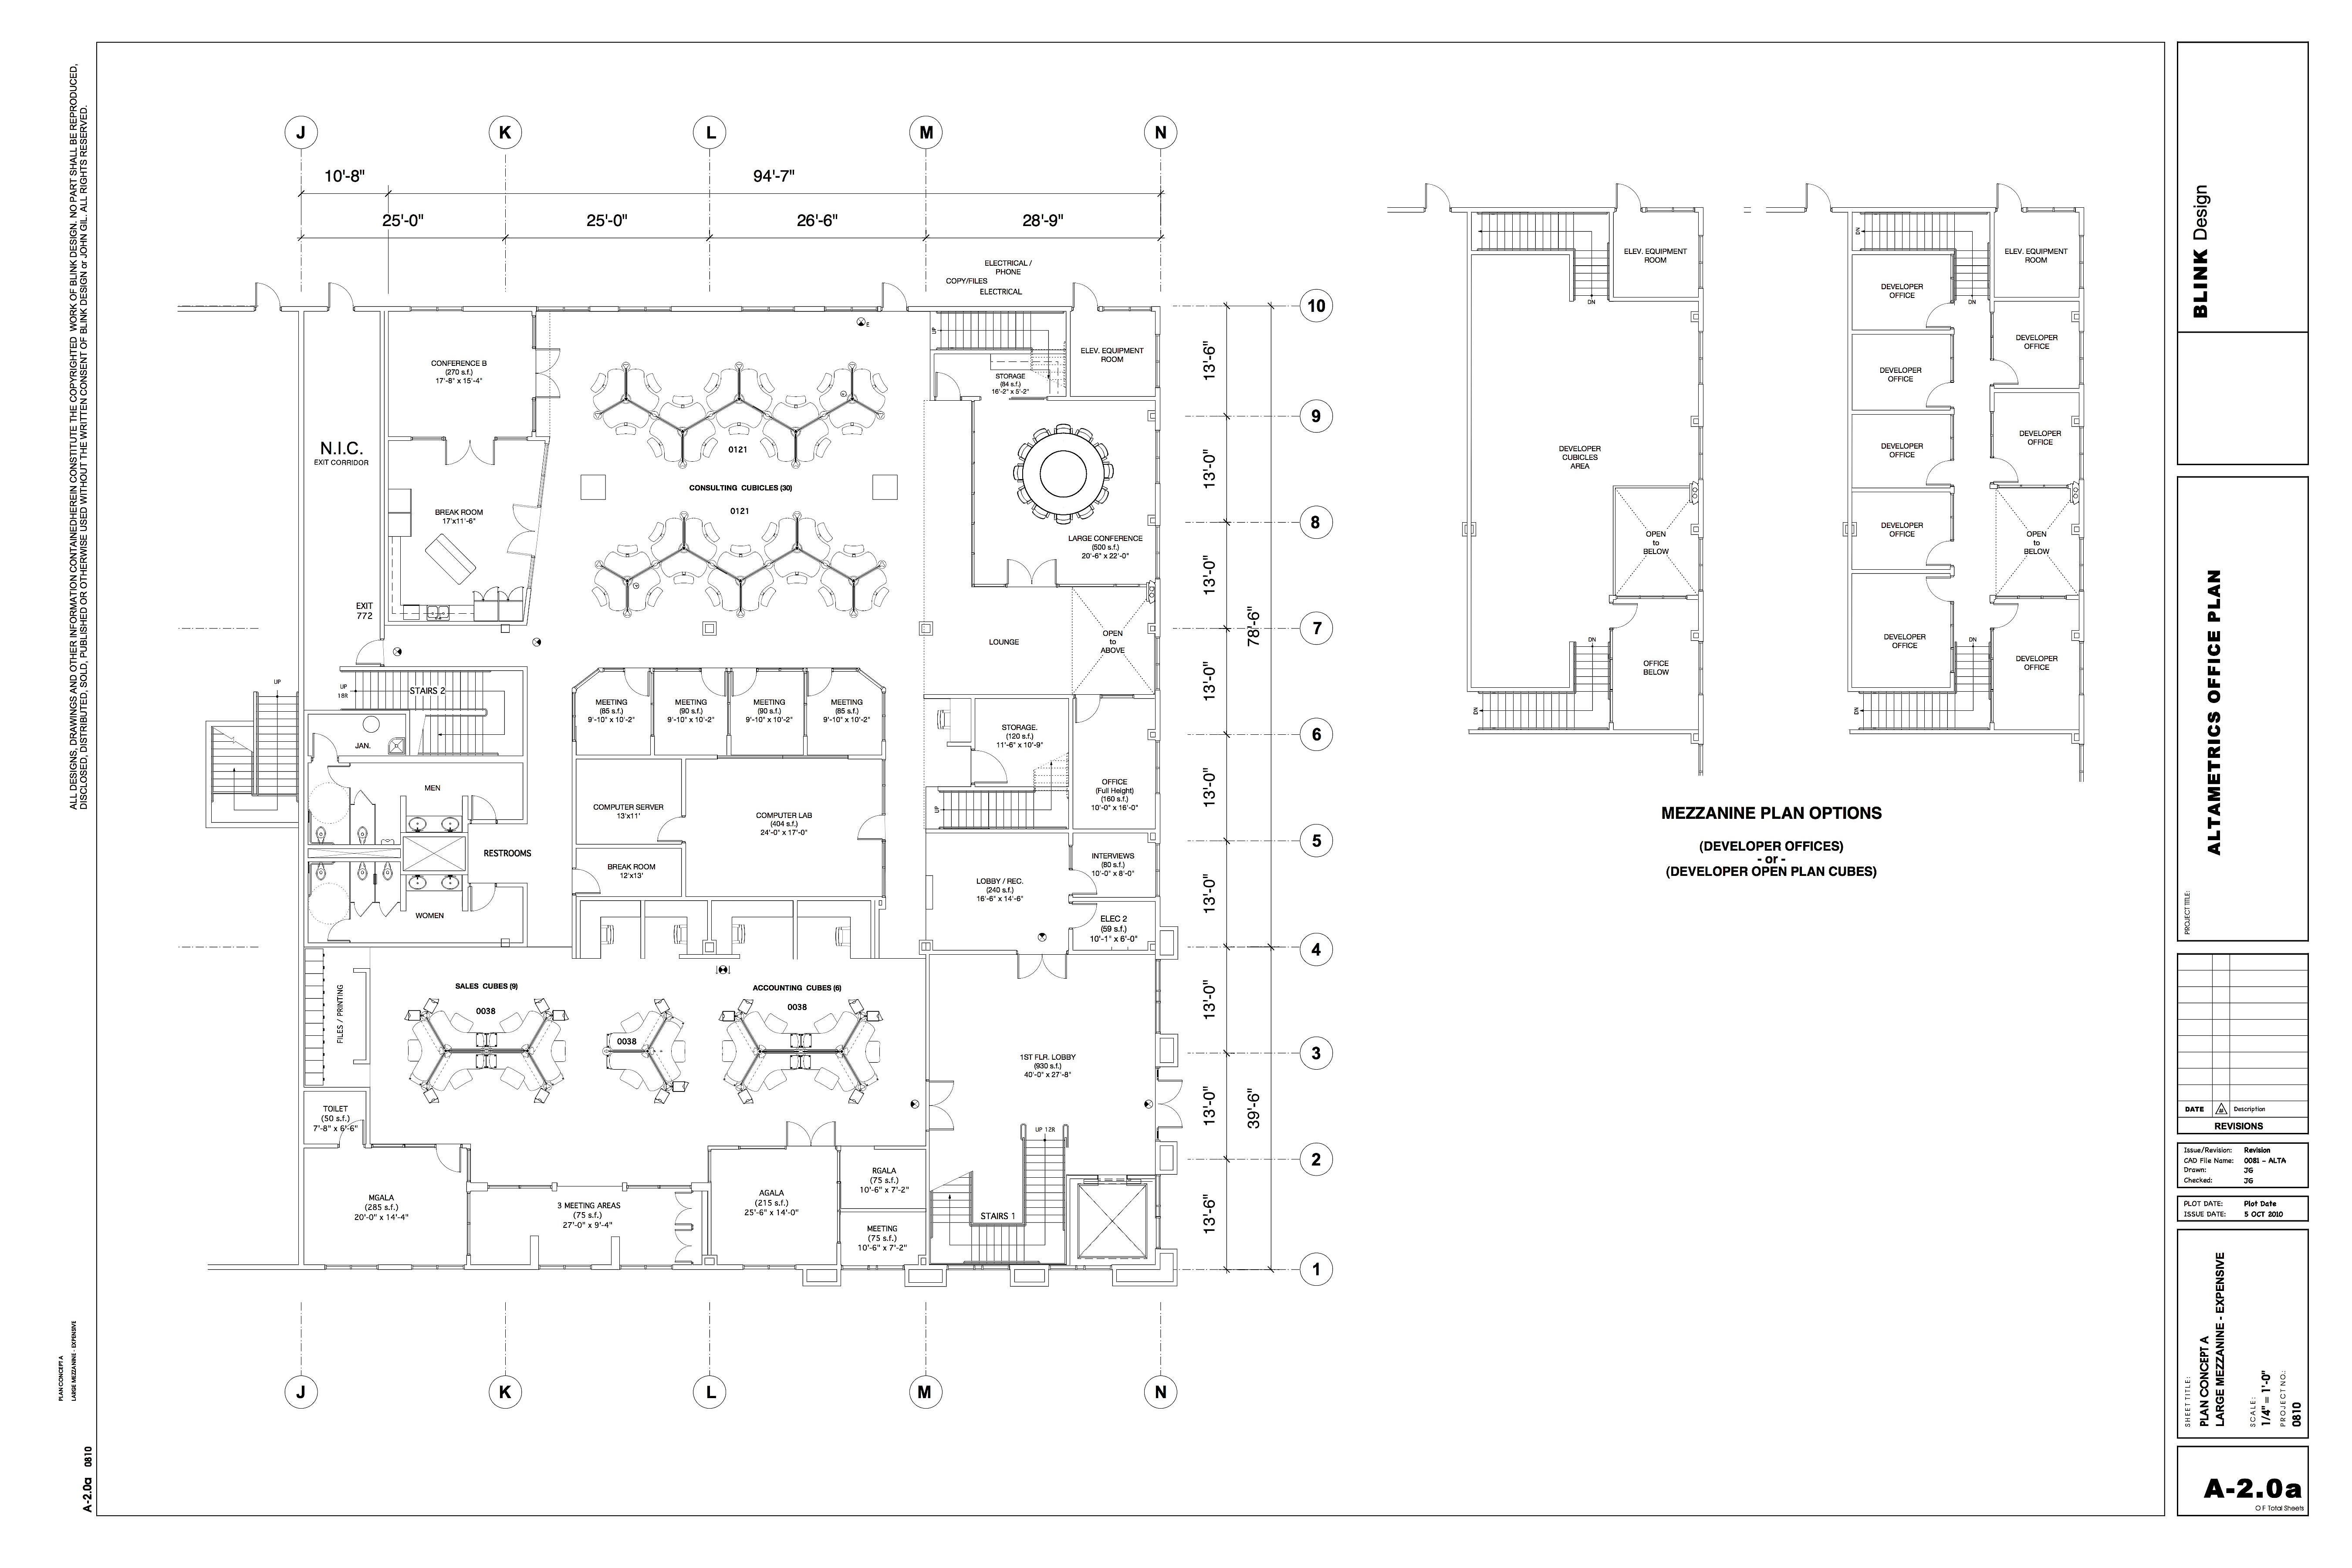 ALTAMETRICS OFFICES (Plan)